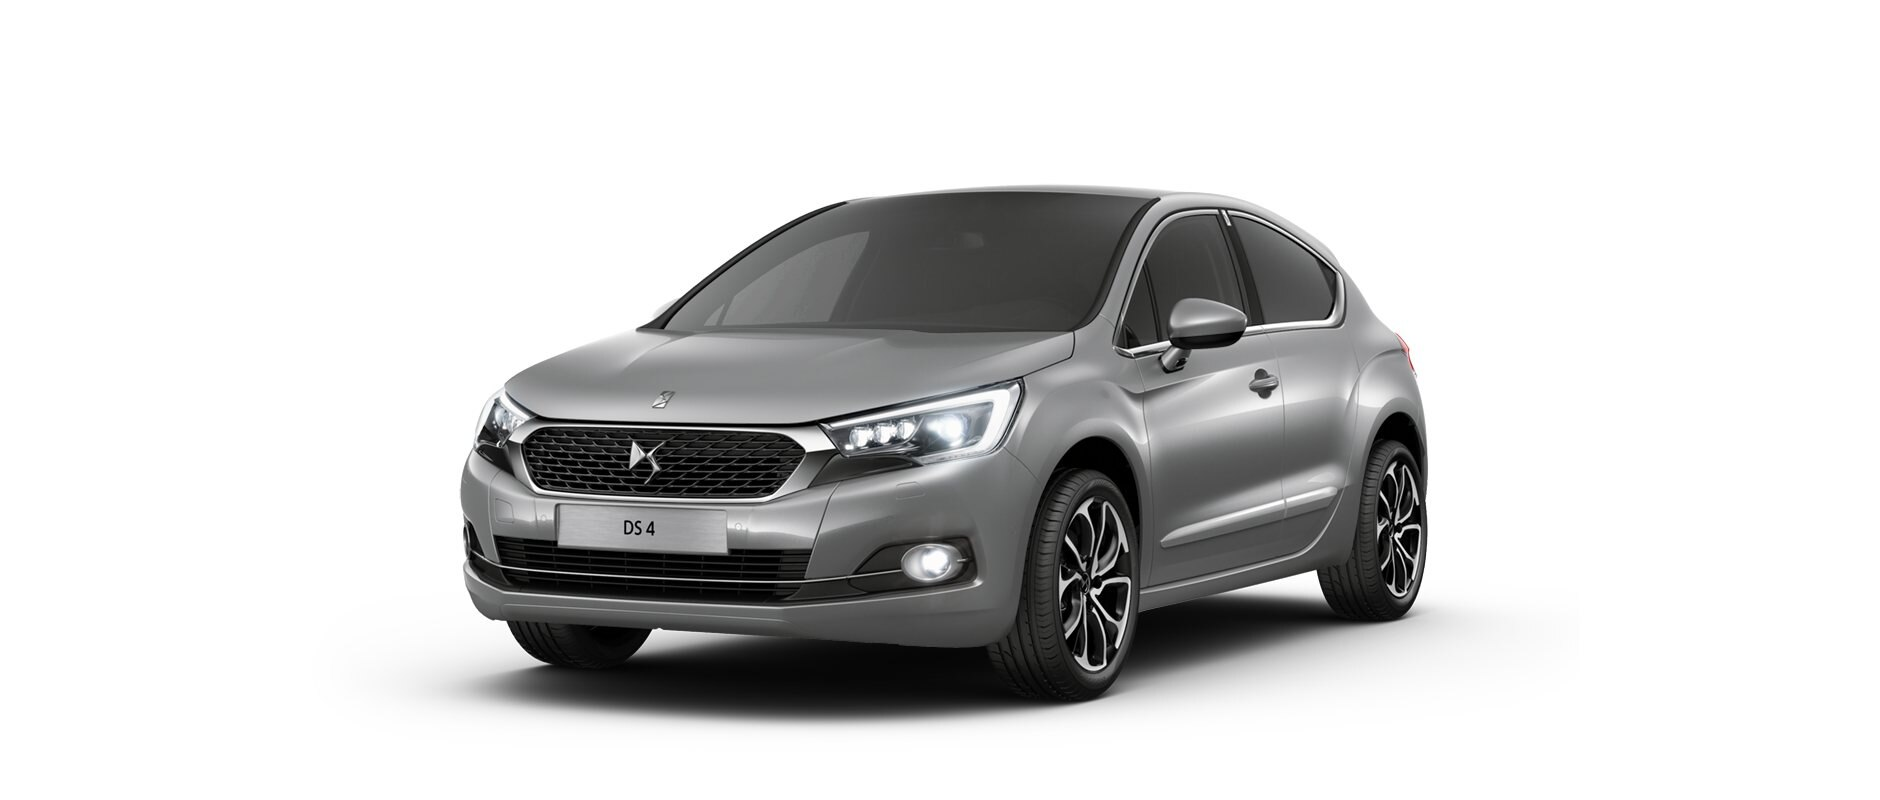 Novi DS 4 - Artense Gray